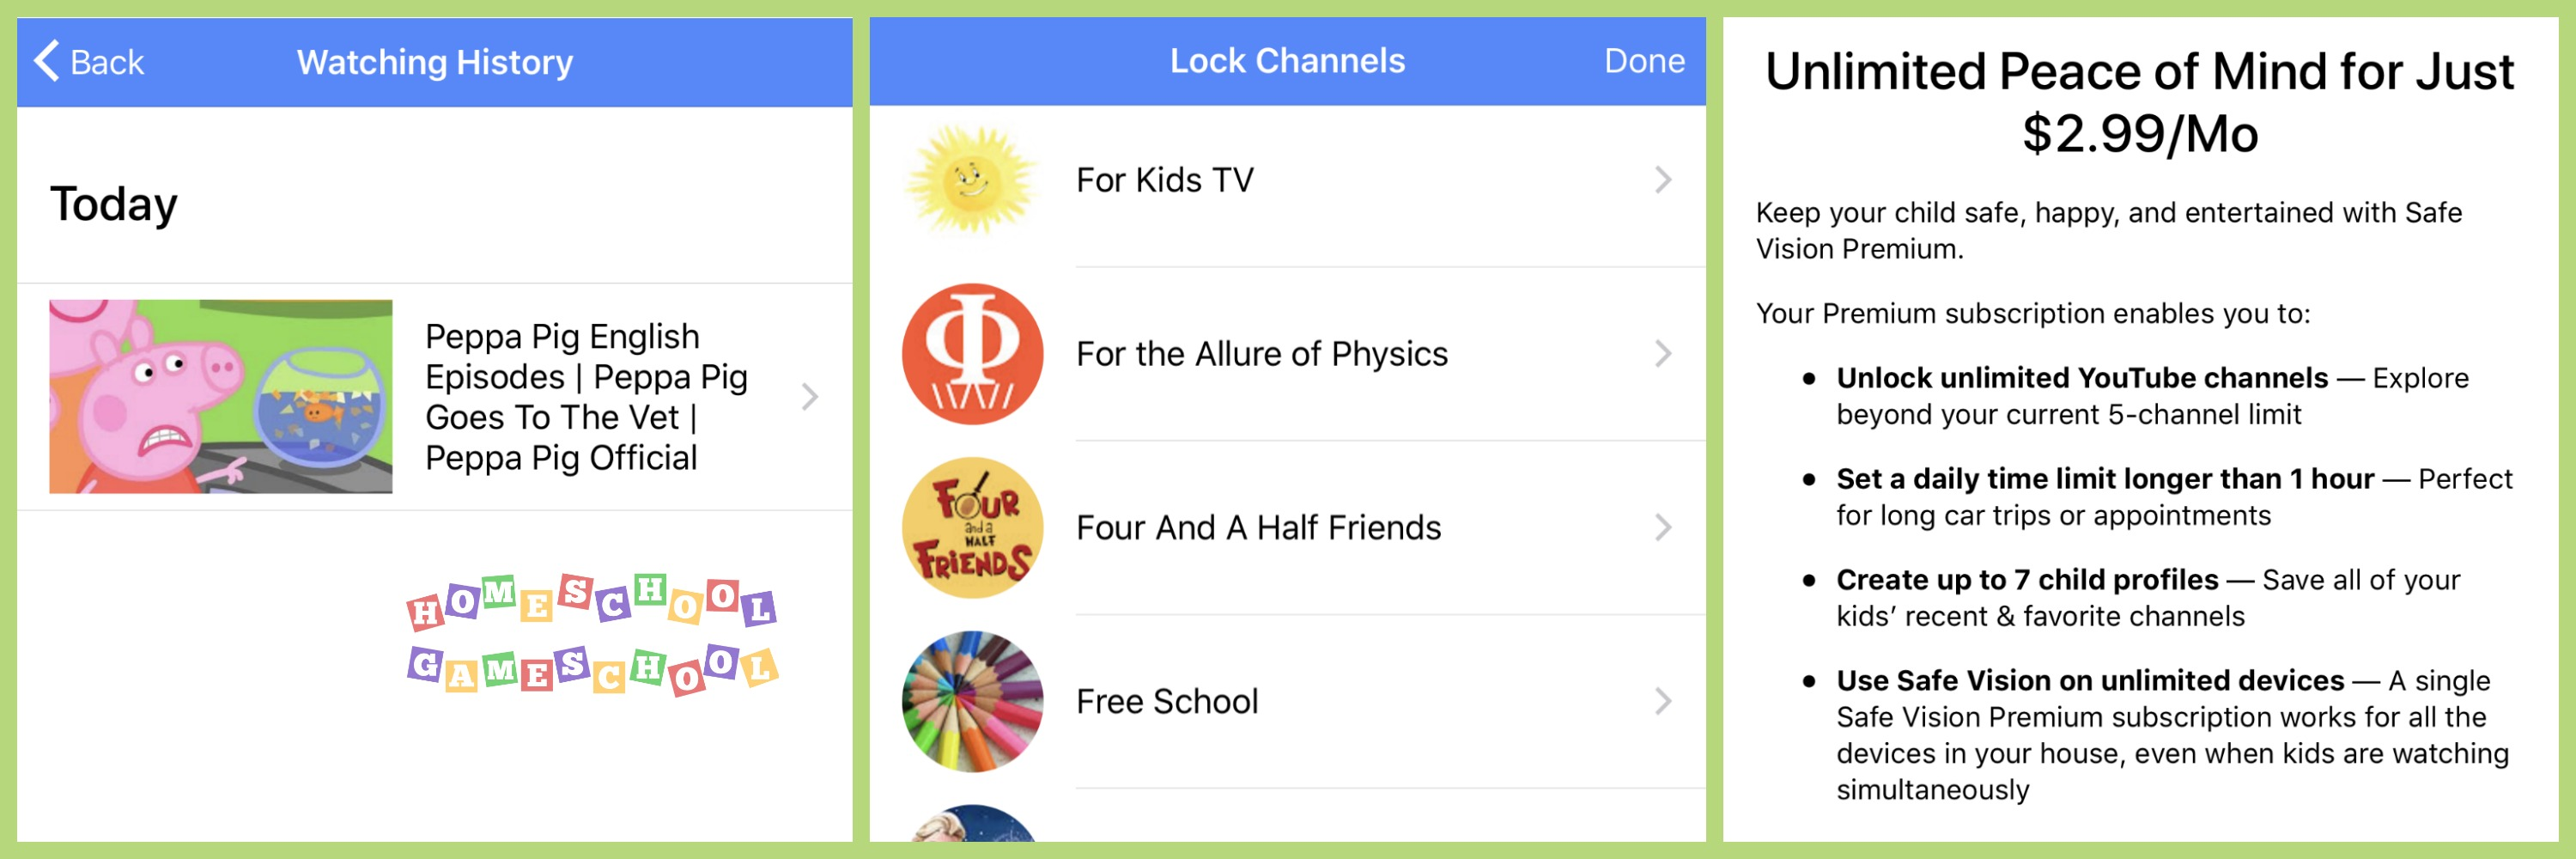 Safe Vision YouTube & YouTube Kids Monitoring App, Gameschooling & Secular Homeschooling & HomeschoolGameschool.com